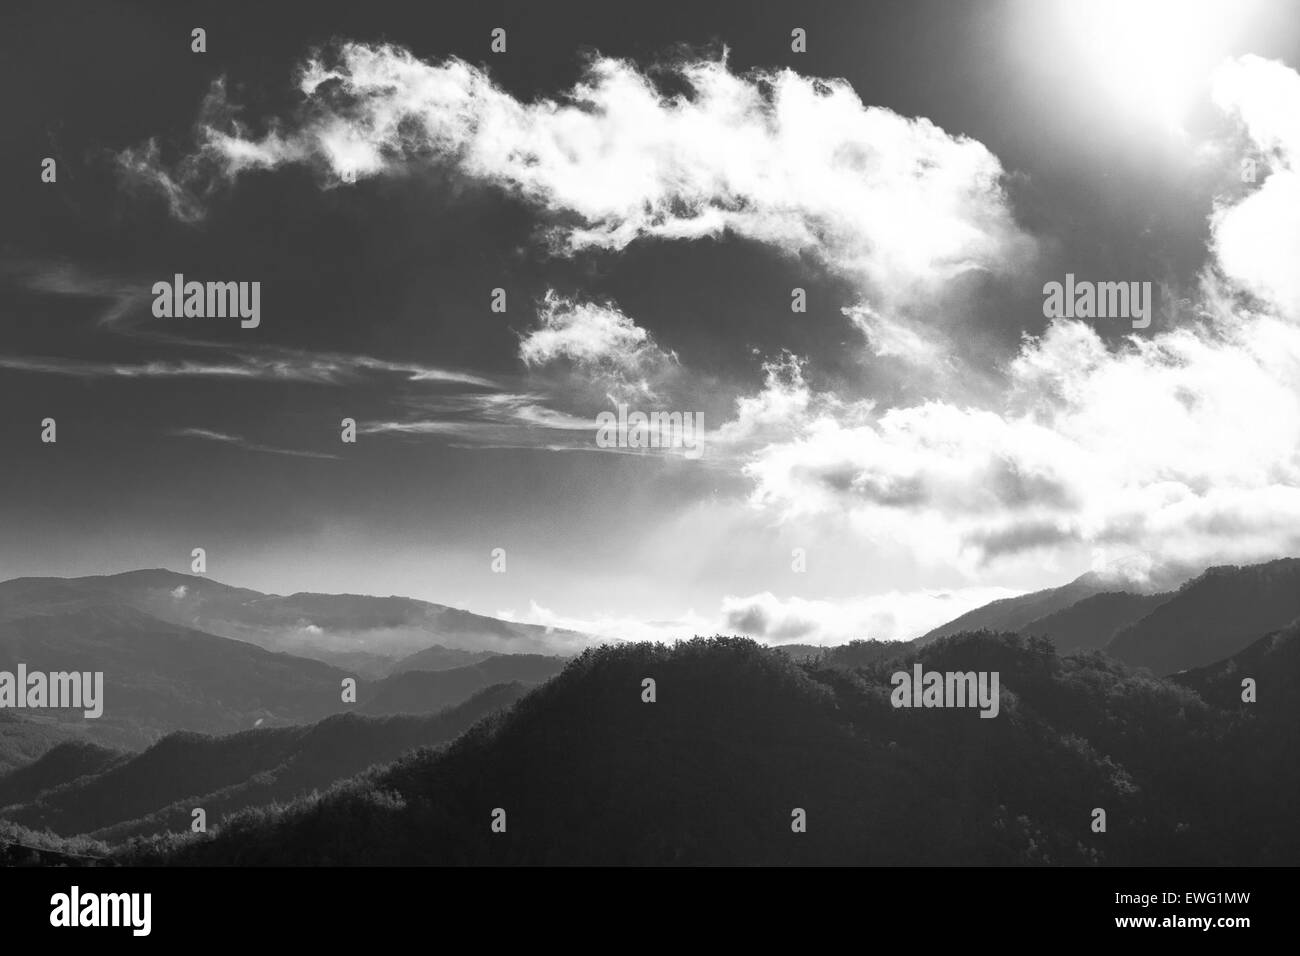 Black and White Landscape with Clouds Over Hills - Stock Image